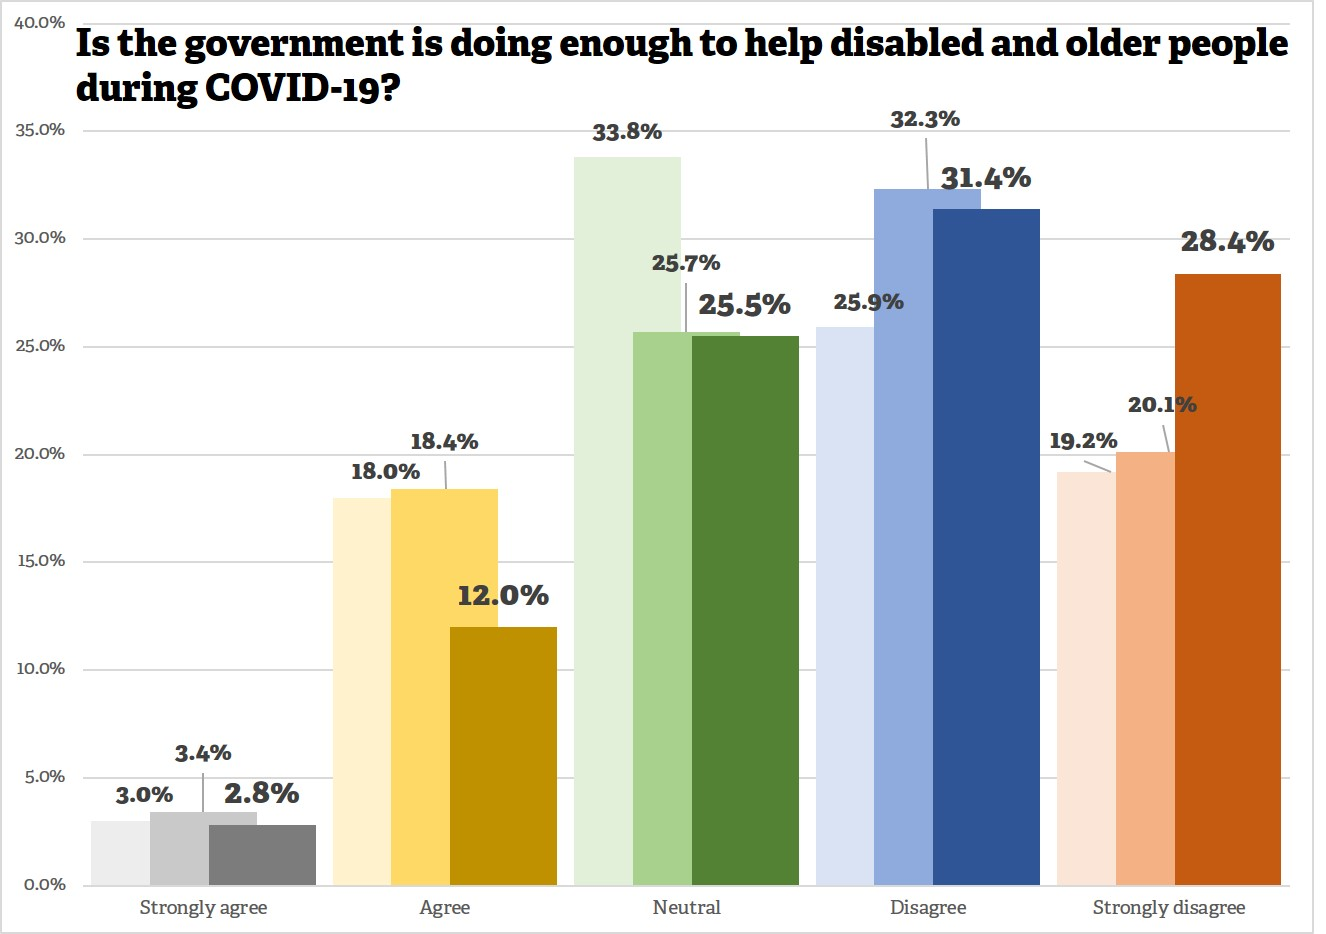 A graph showing the attitudes of disabled and older people towards the government's performance during COVID-19